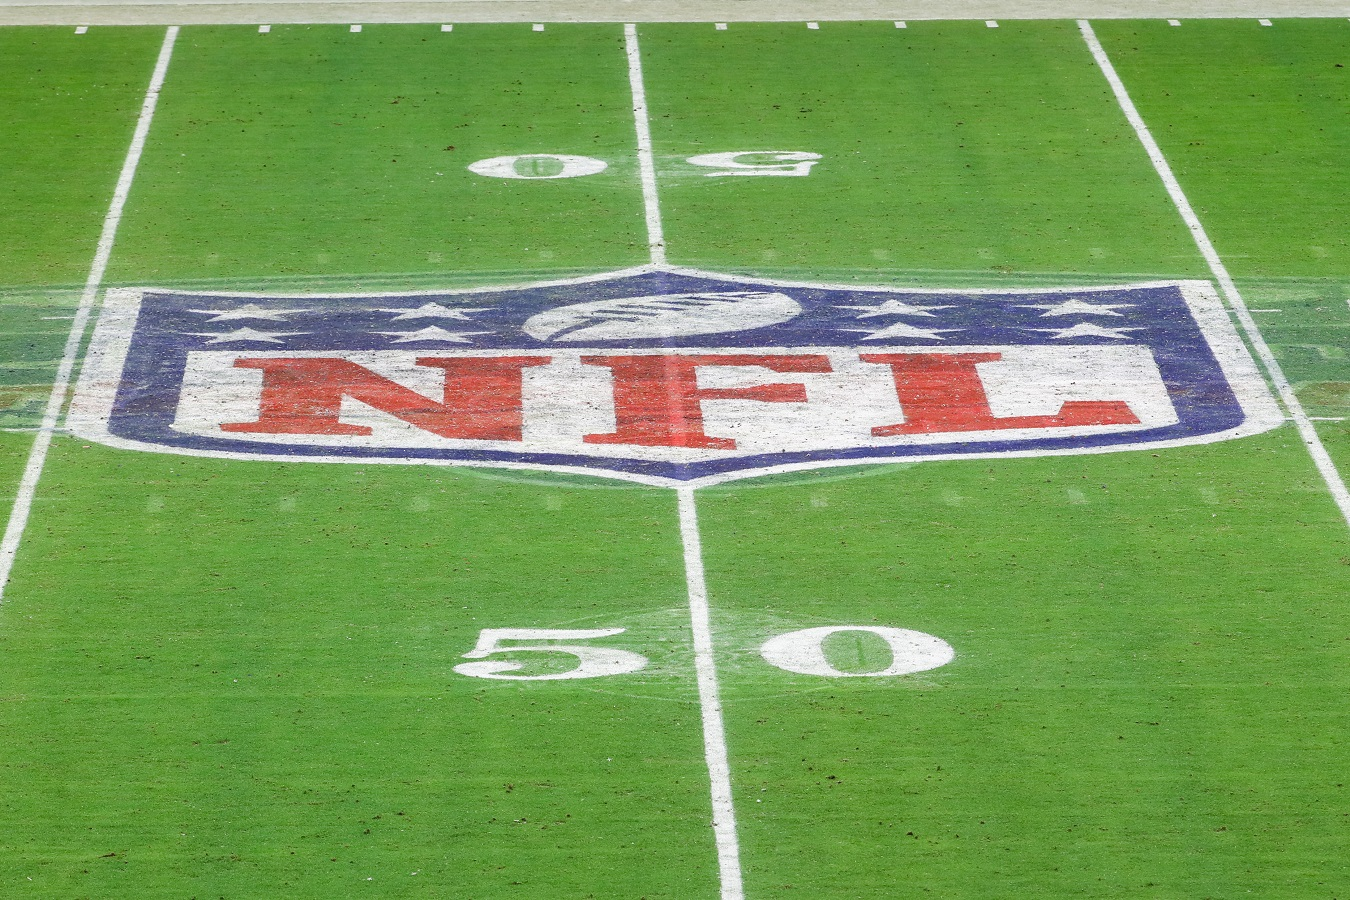 The NFL shield logo painted at the 50-yard line